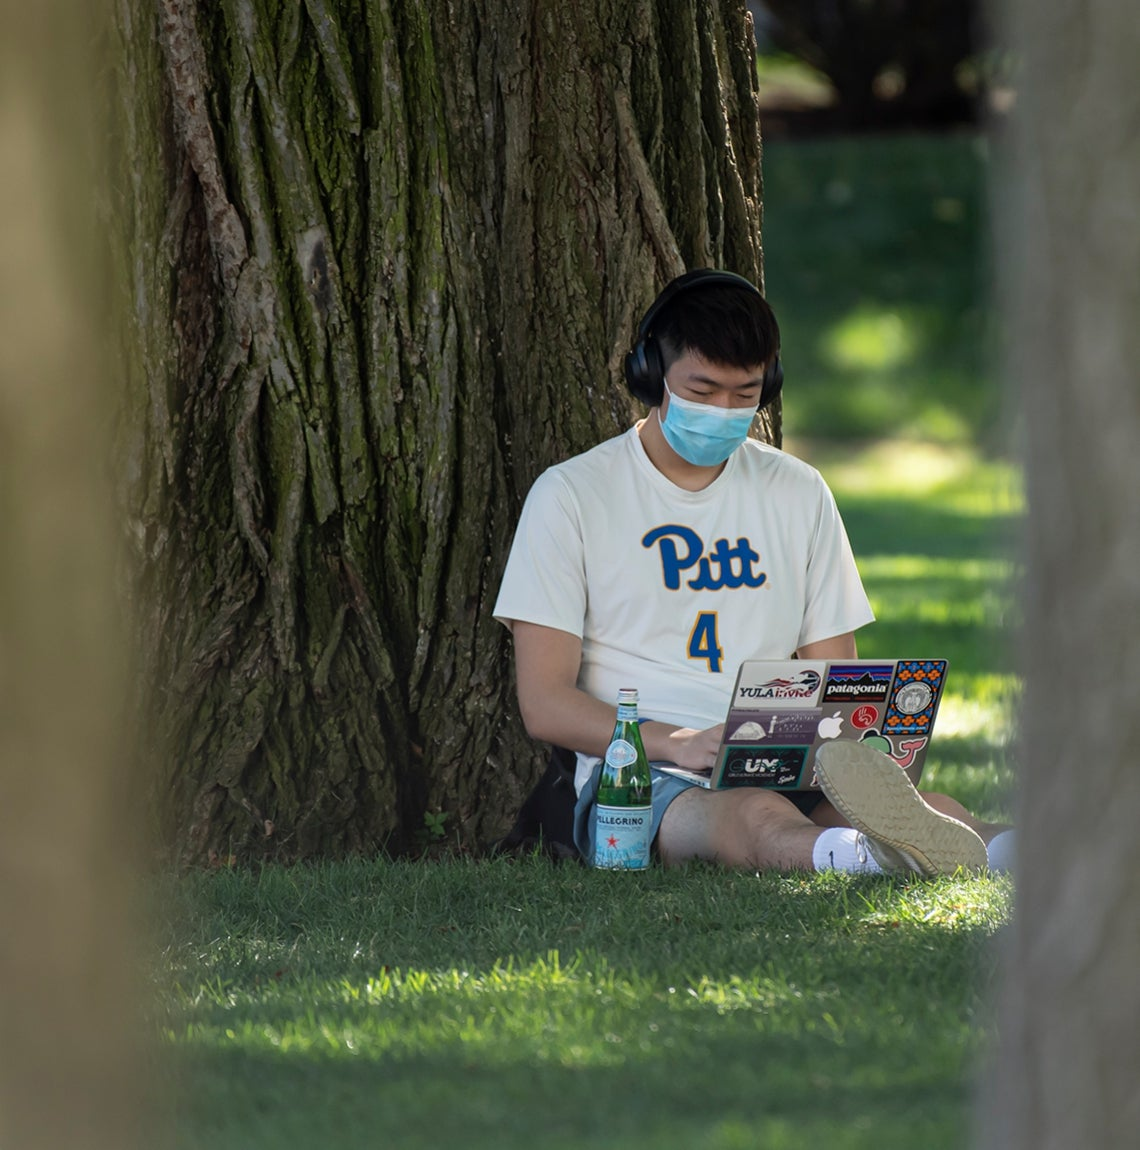 Masked student in Pitt athletic shirt sits in grass and leans against tree while working on his laptop